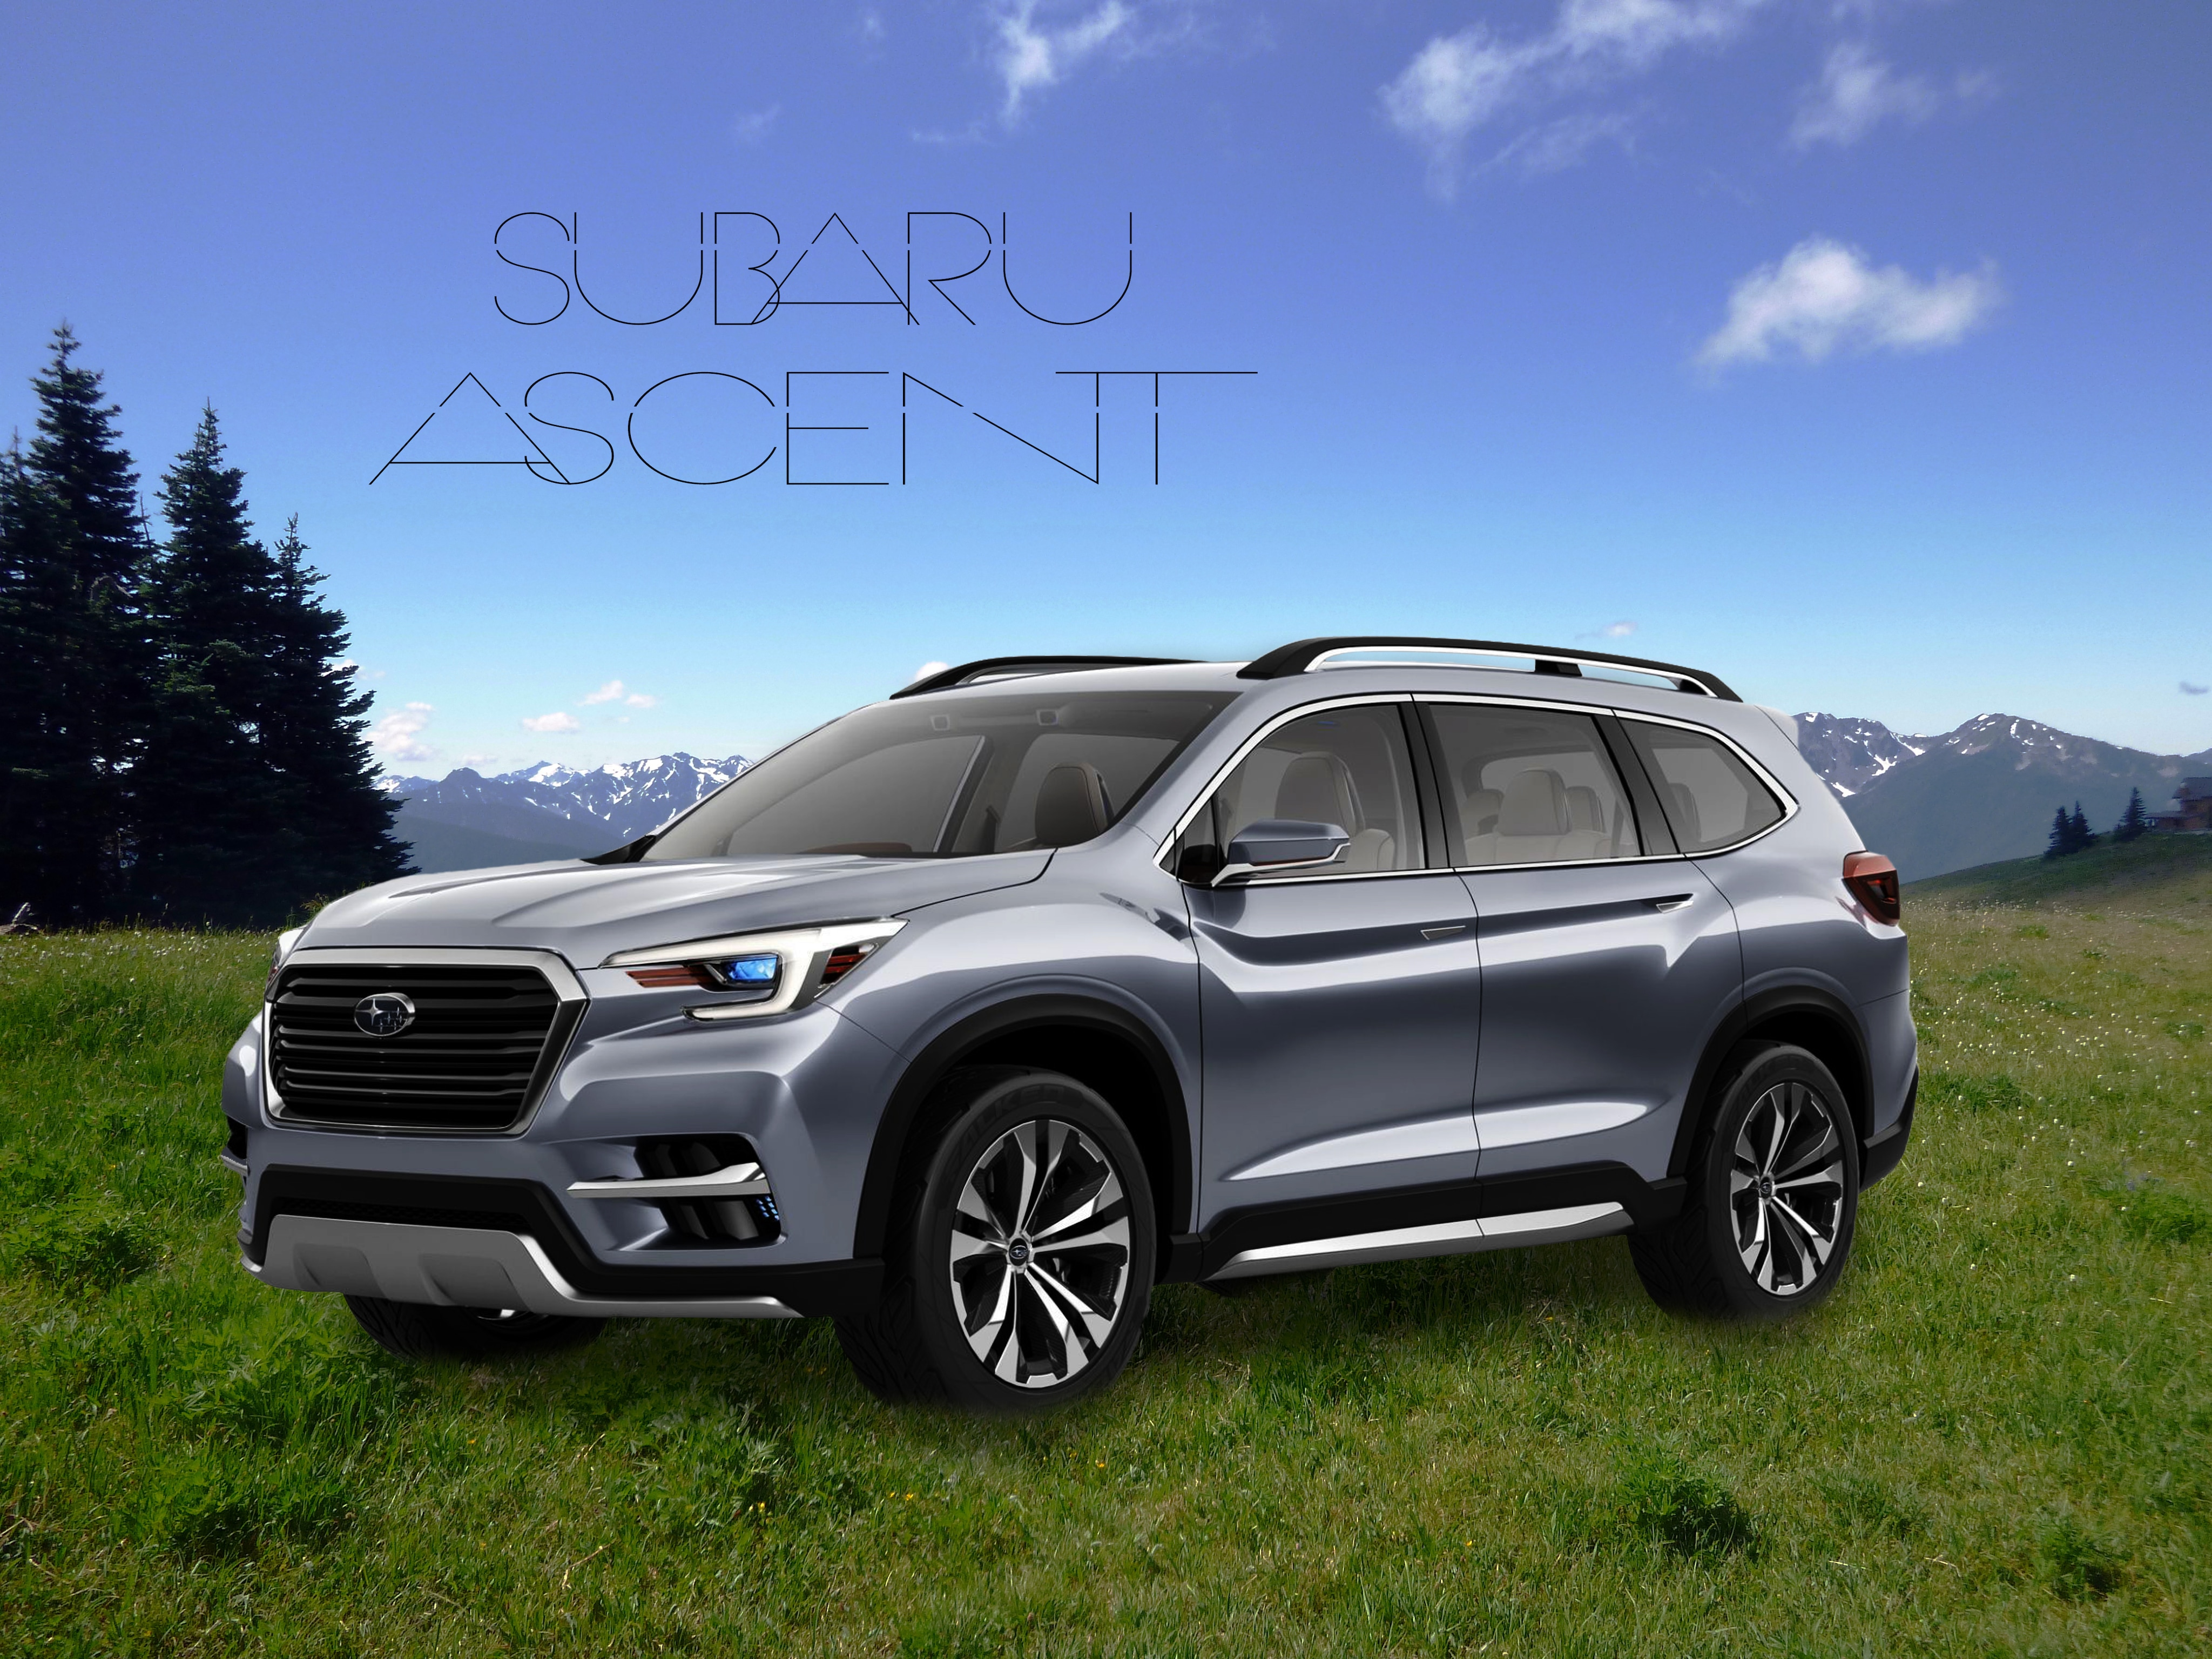 2018 subaru ascent price. plain ascent 1 httpwwwcaranddrivercomfeaturesthe2018subaruascent isacarworthwaitingforfeature intended 2018 subaru ascent price